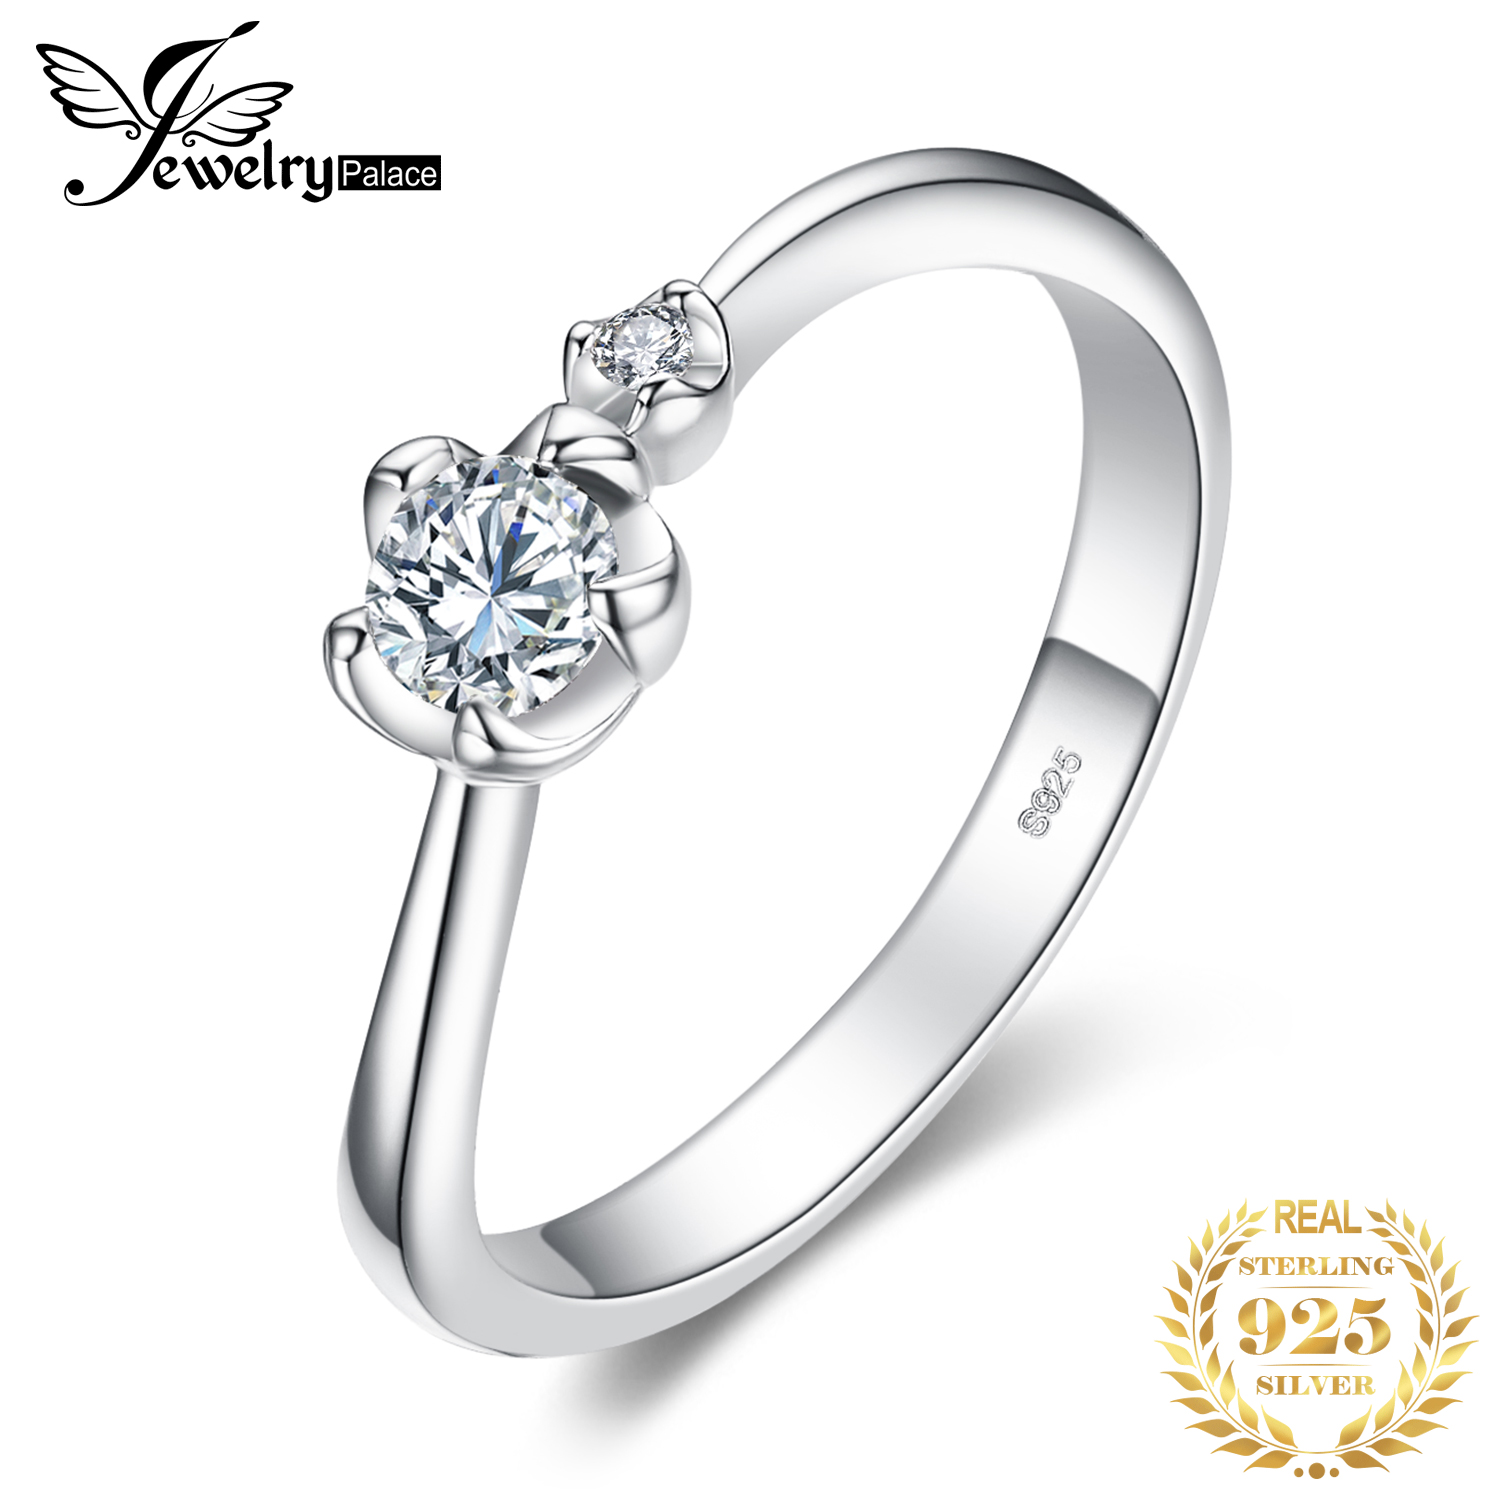 JewelryPalace Flower Cubic Zirconia Anniversary Promise Engagement Ring 925 Sterling Silver Beautiful For Women 2018 New Hot